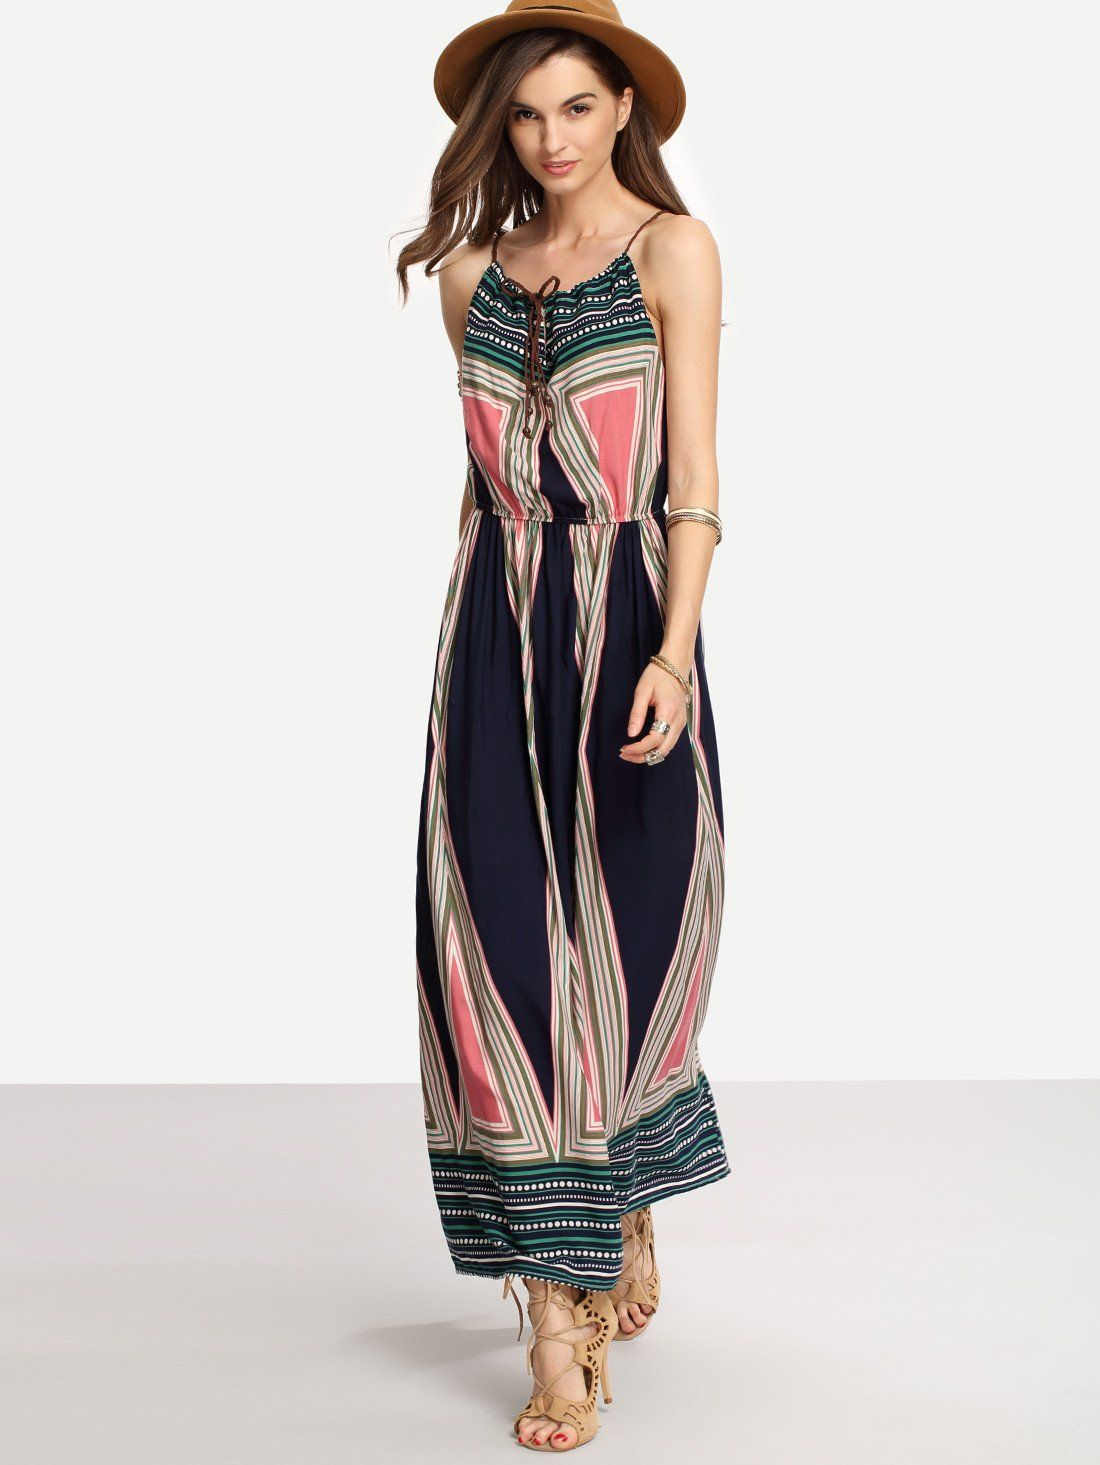 540fc9d905 Petalsfashionz.com Quick shipping low prices women s maxi dresses   sun  dresses Brand